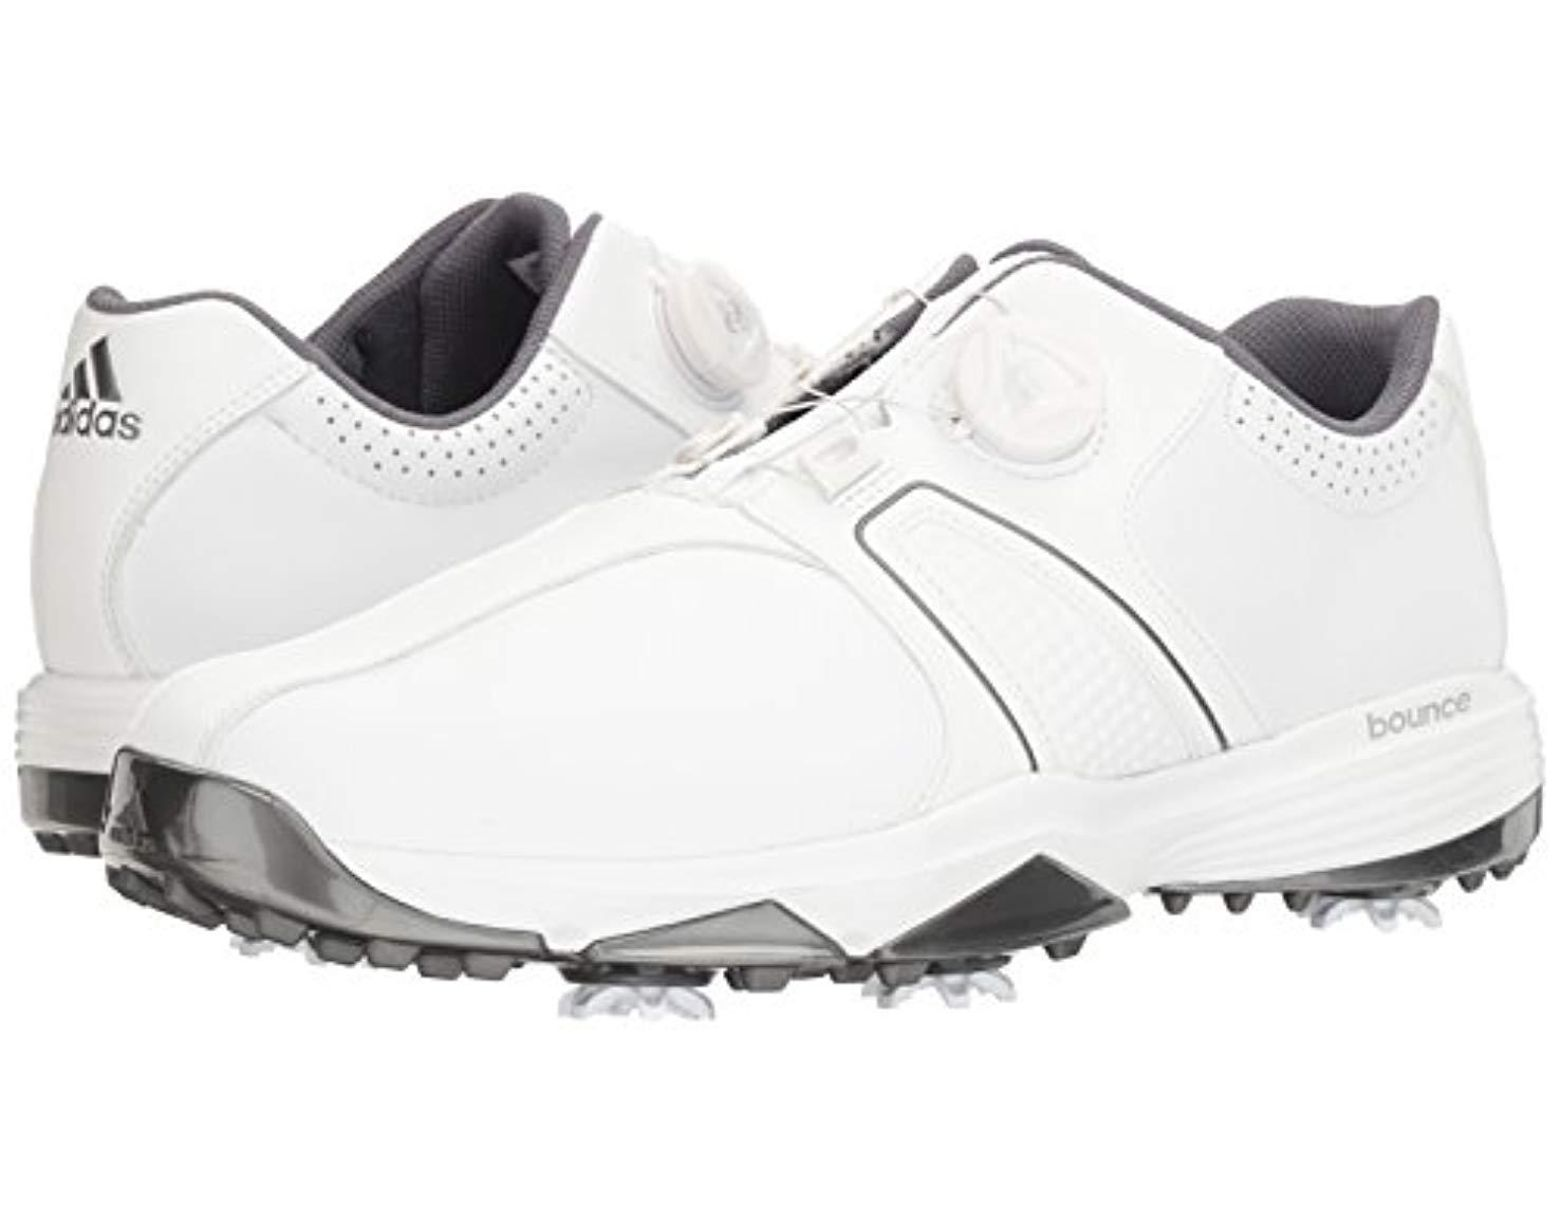 213c735990631 Men's White 360 Traxion Boa Golf Shoe